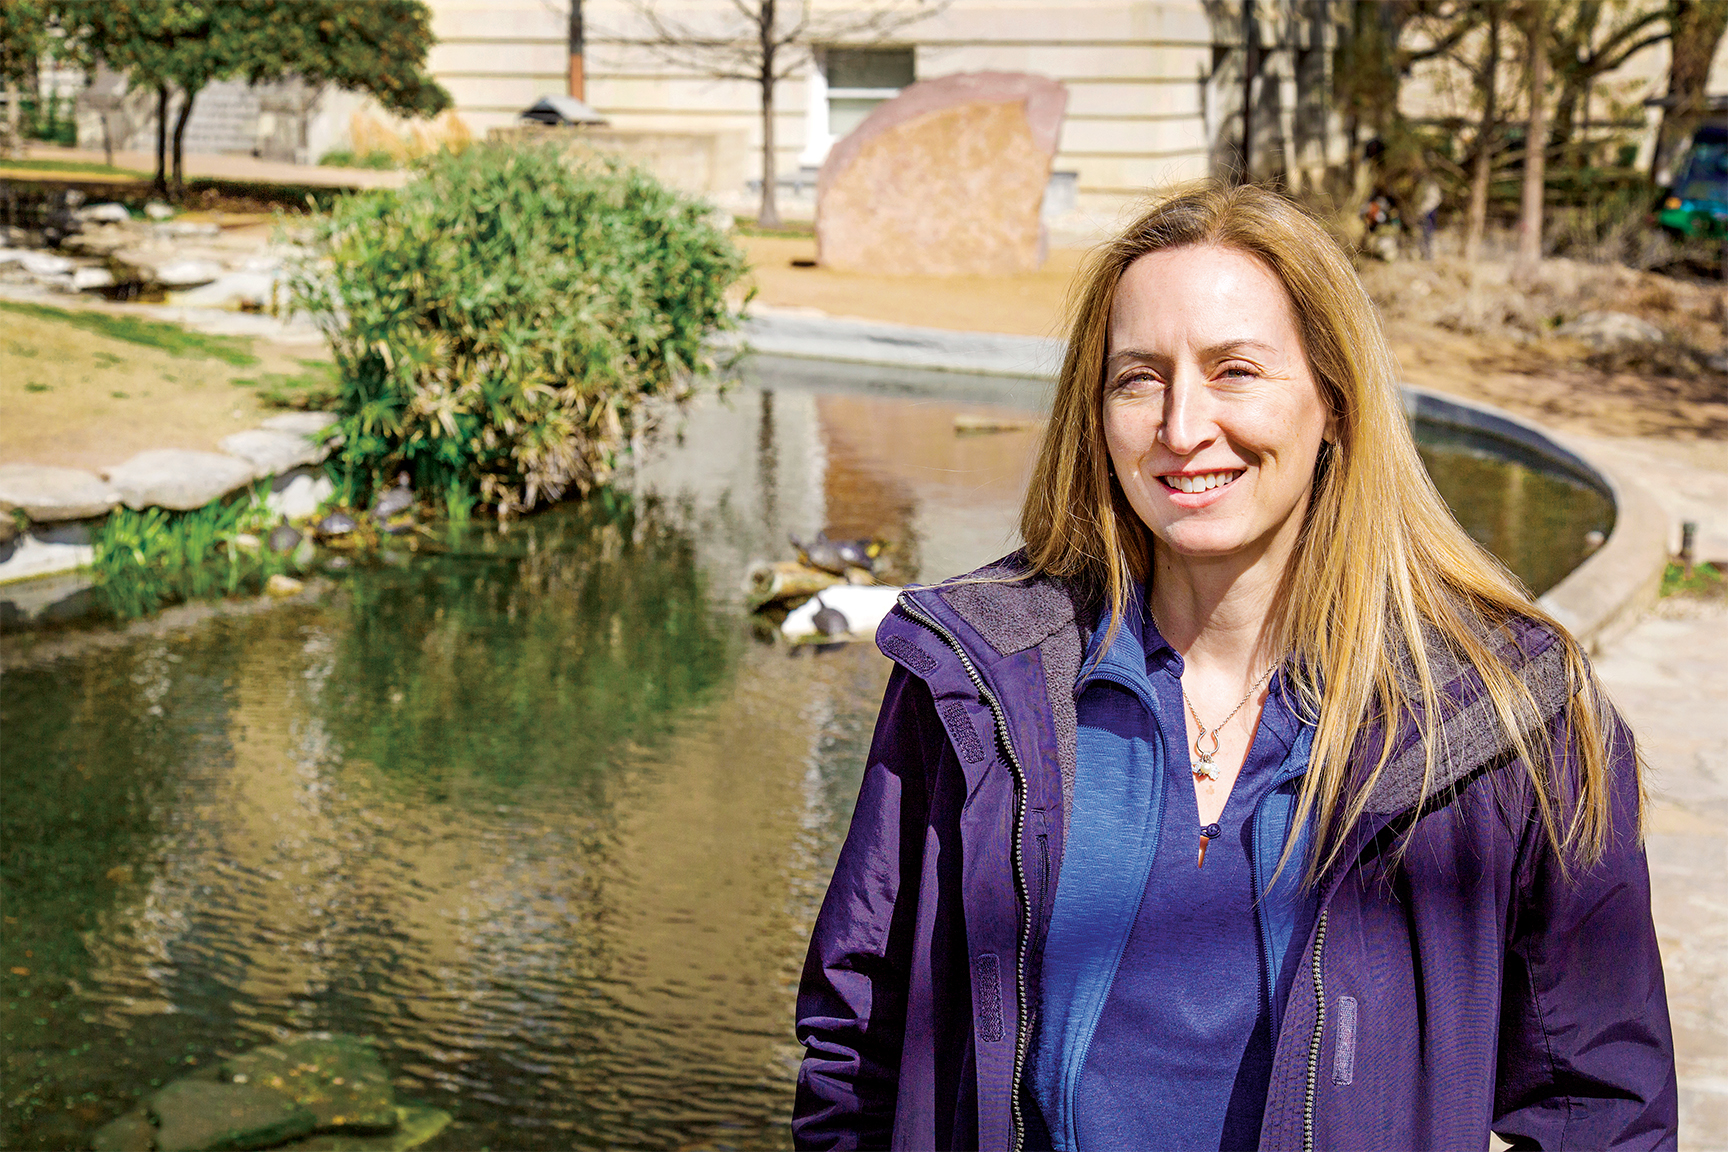 Carin Peterson stands by the UT turtle pond.